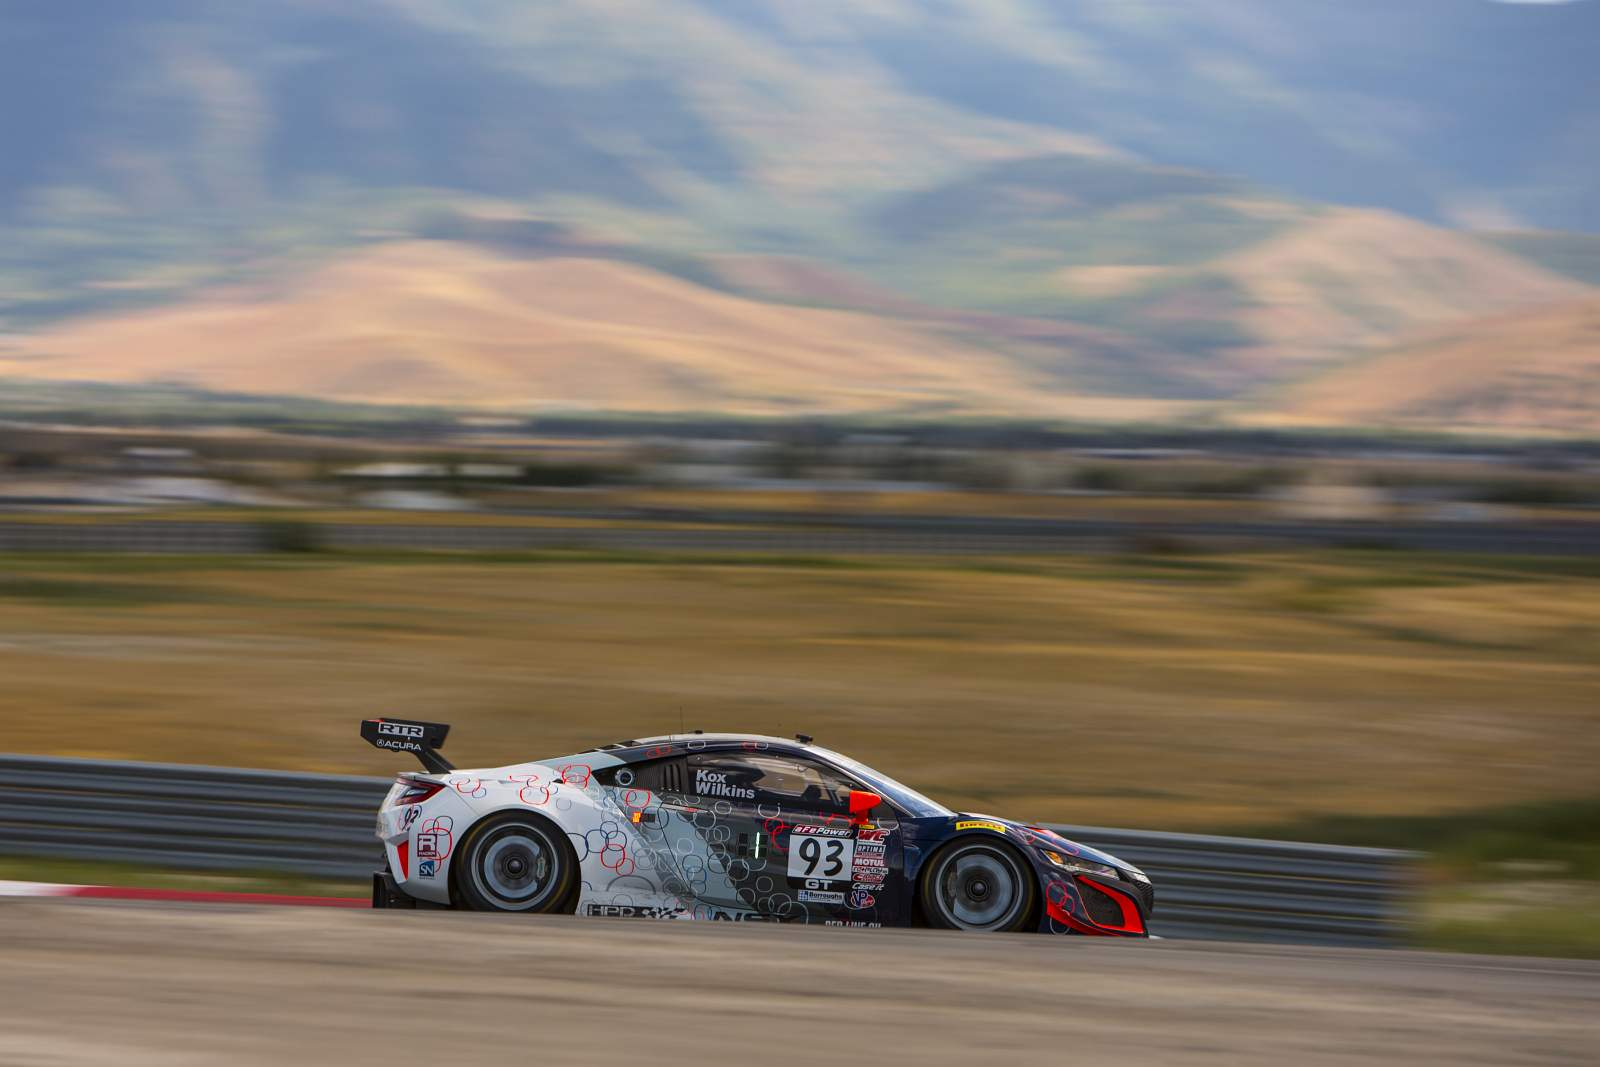 peter-kox-realtime-racing-pirelli-world-challenge-utah-motorsport-campus--146